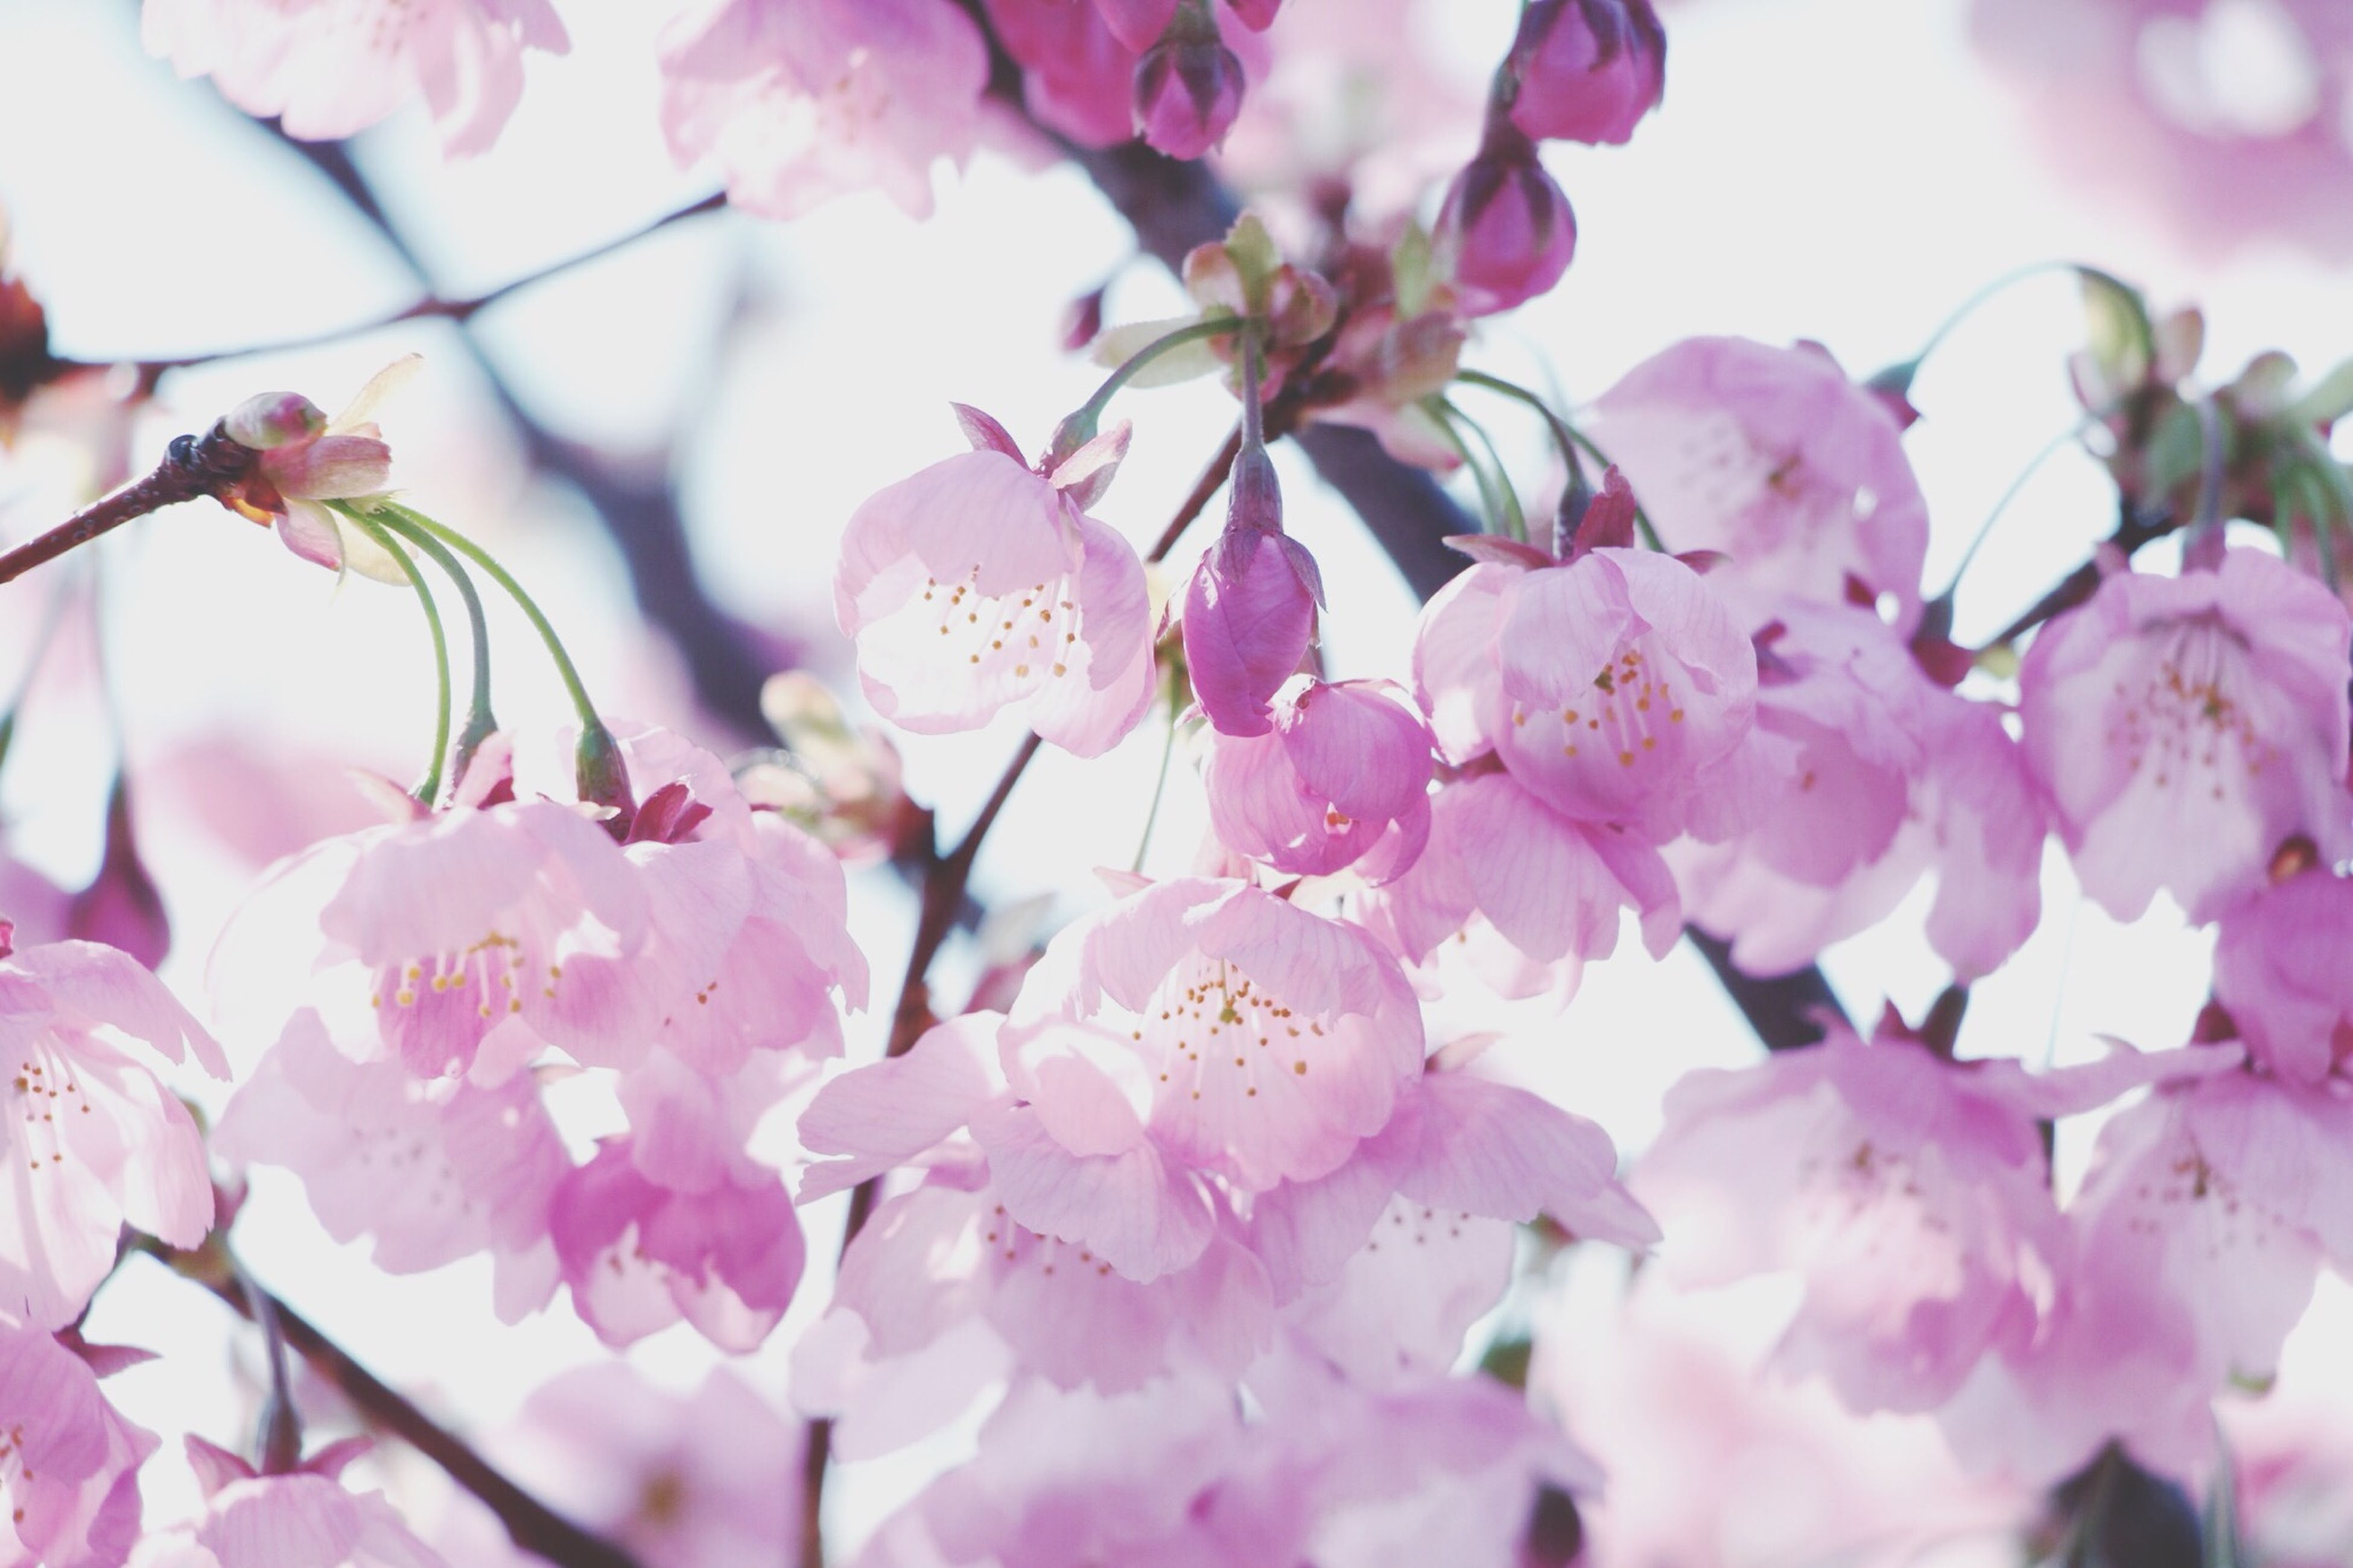 flower, freshness, fragility, pink color, growth, beauty in nature, cherry blossom, petal, branch, blossom, nature, tree, cherry tree, close-up, in bloom, pink, focus on foreground, blooming, flower head, springtime